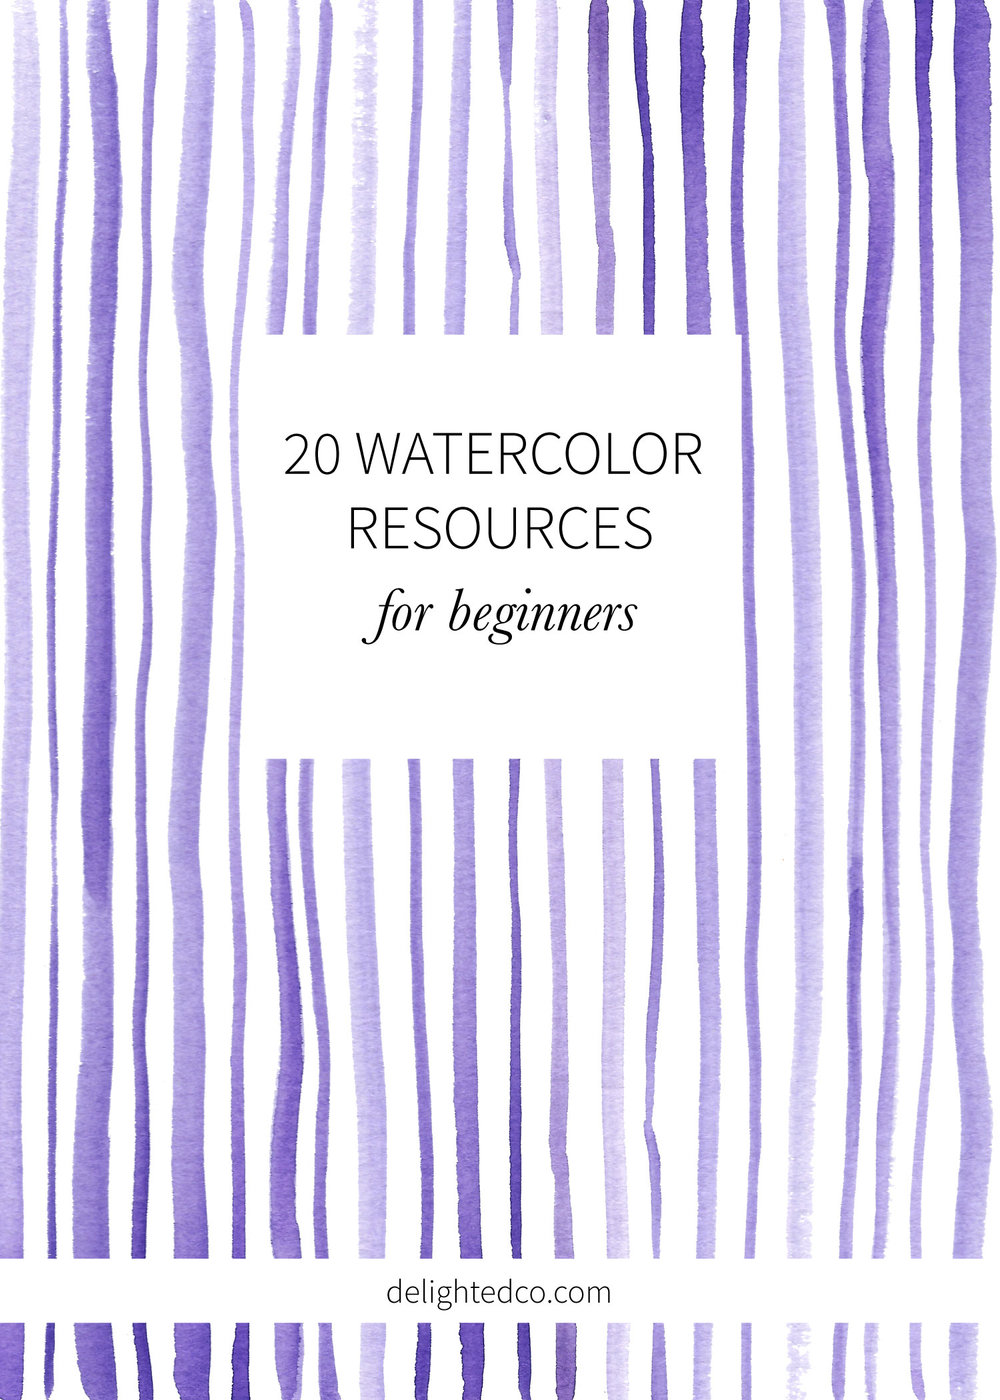 20 Watercolor + Art Resources for Beginners